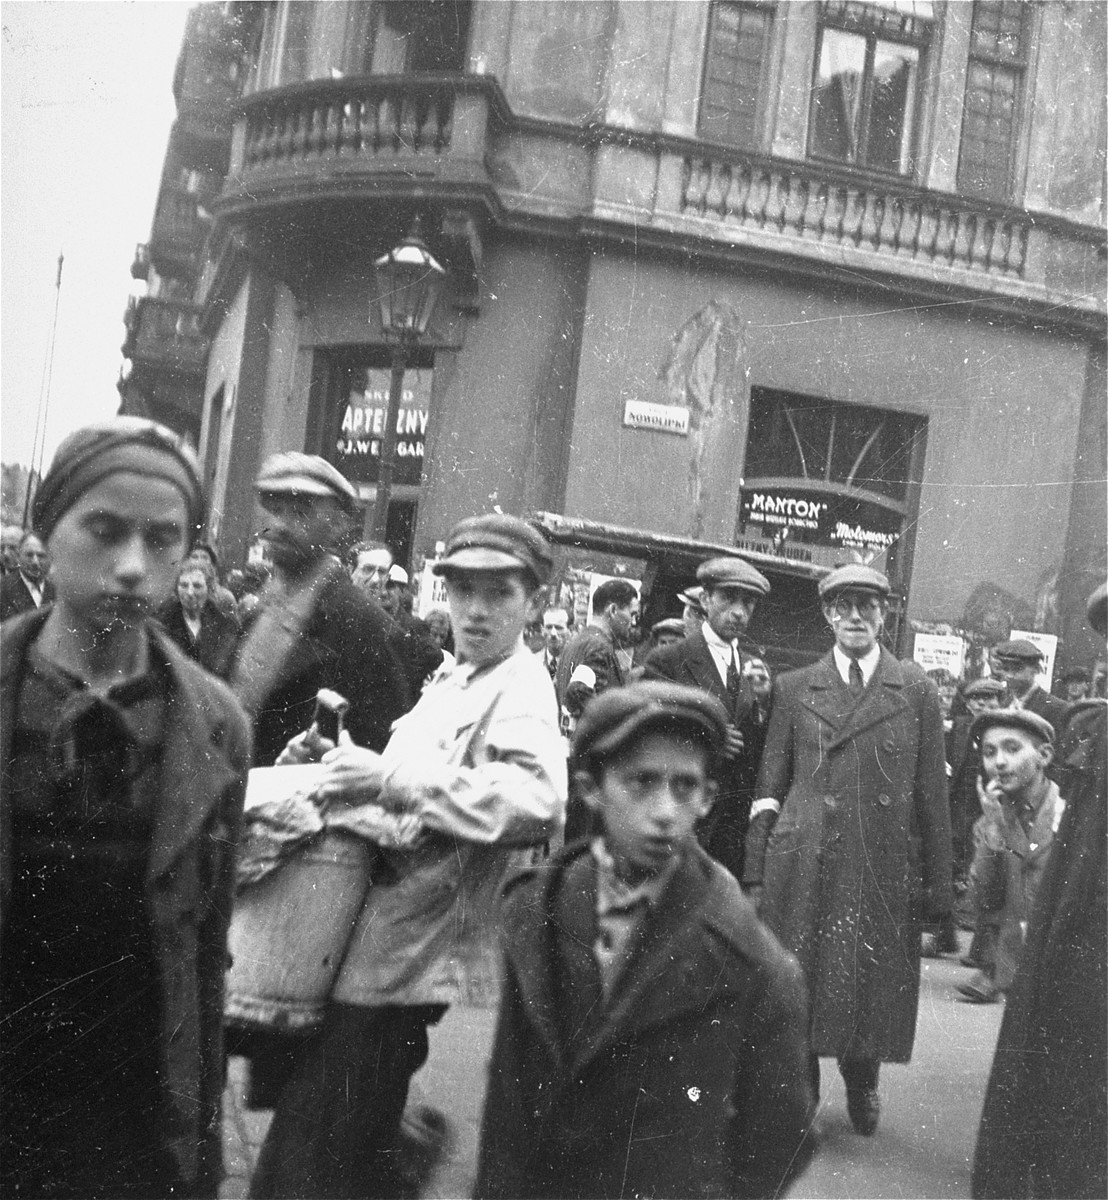 """Jews in the Warsaw ghetto on the corner of Nowolipki Street.    Joest's original caption reads: """"Although most of the people were sick, I never saw anyone go into the apothecary shop on Nowolipicki Street."""""""